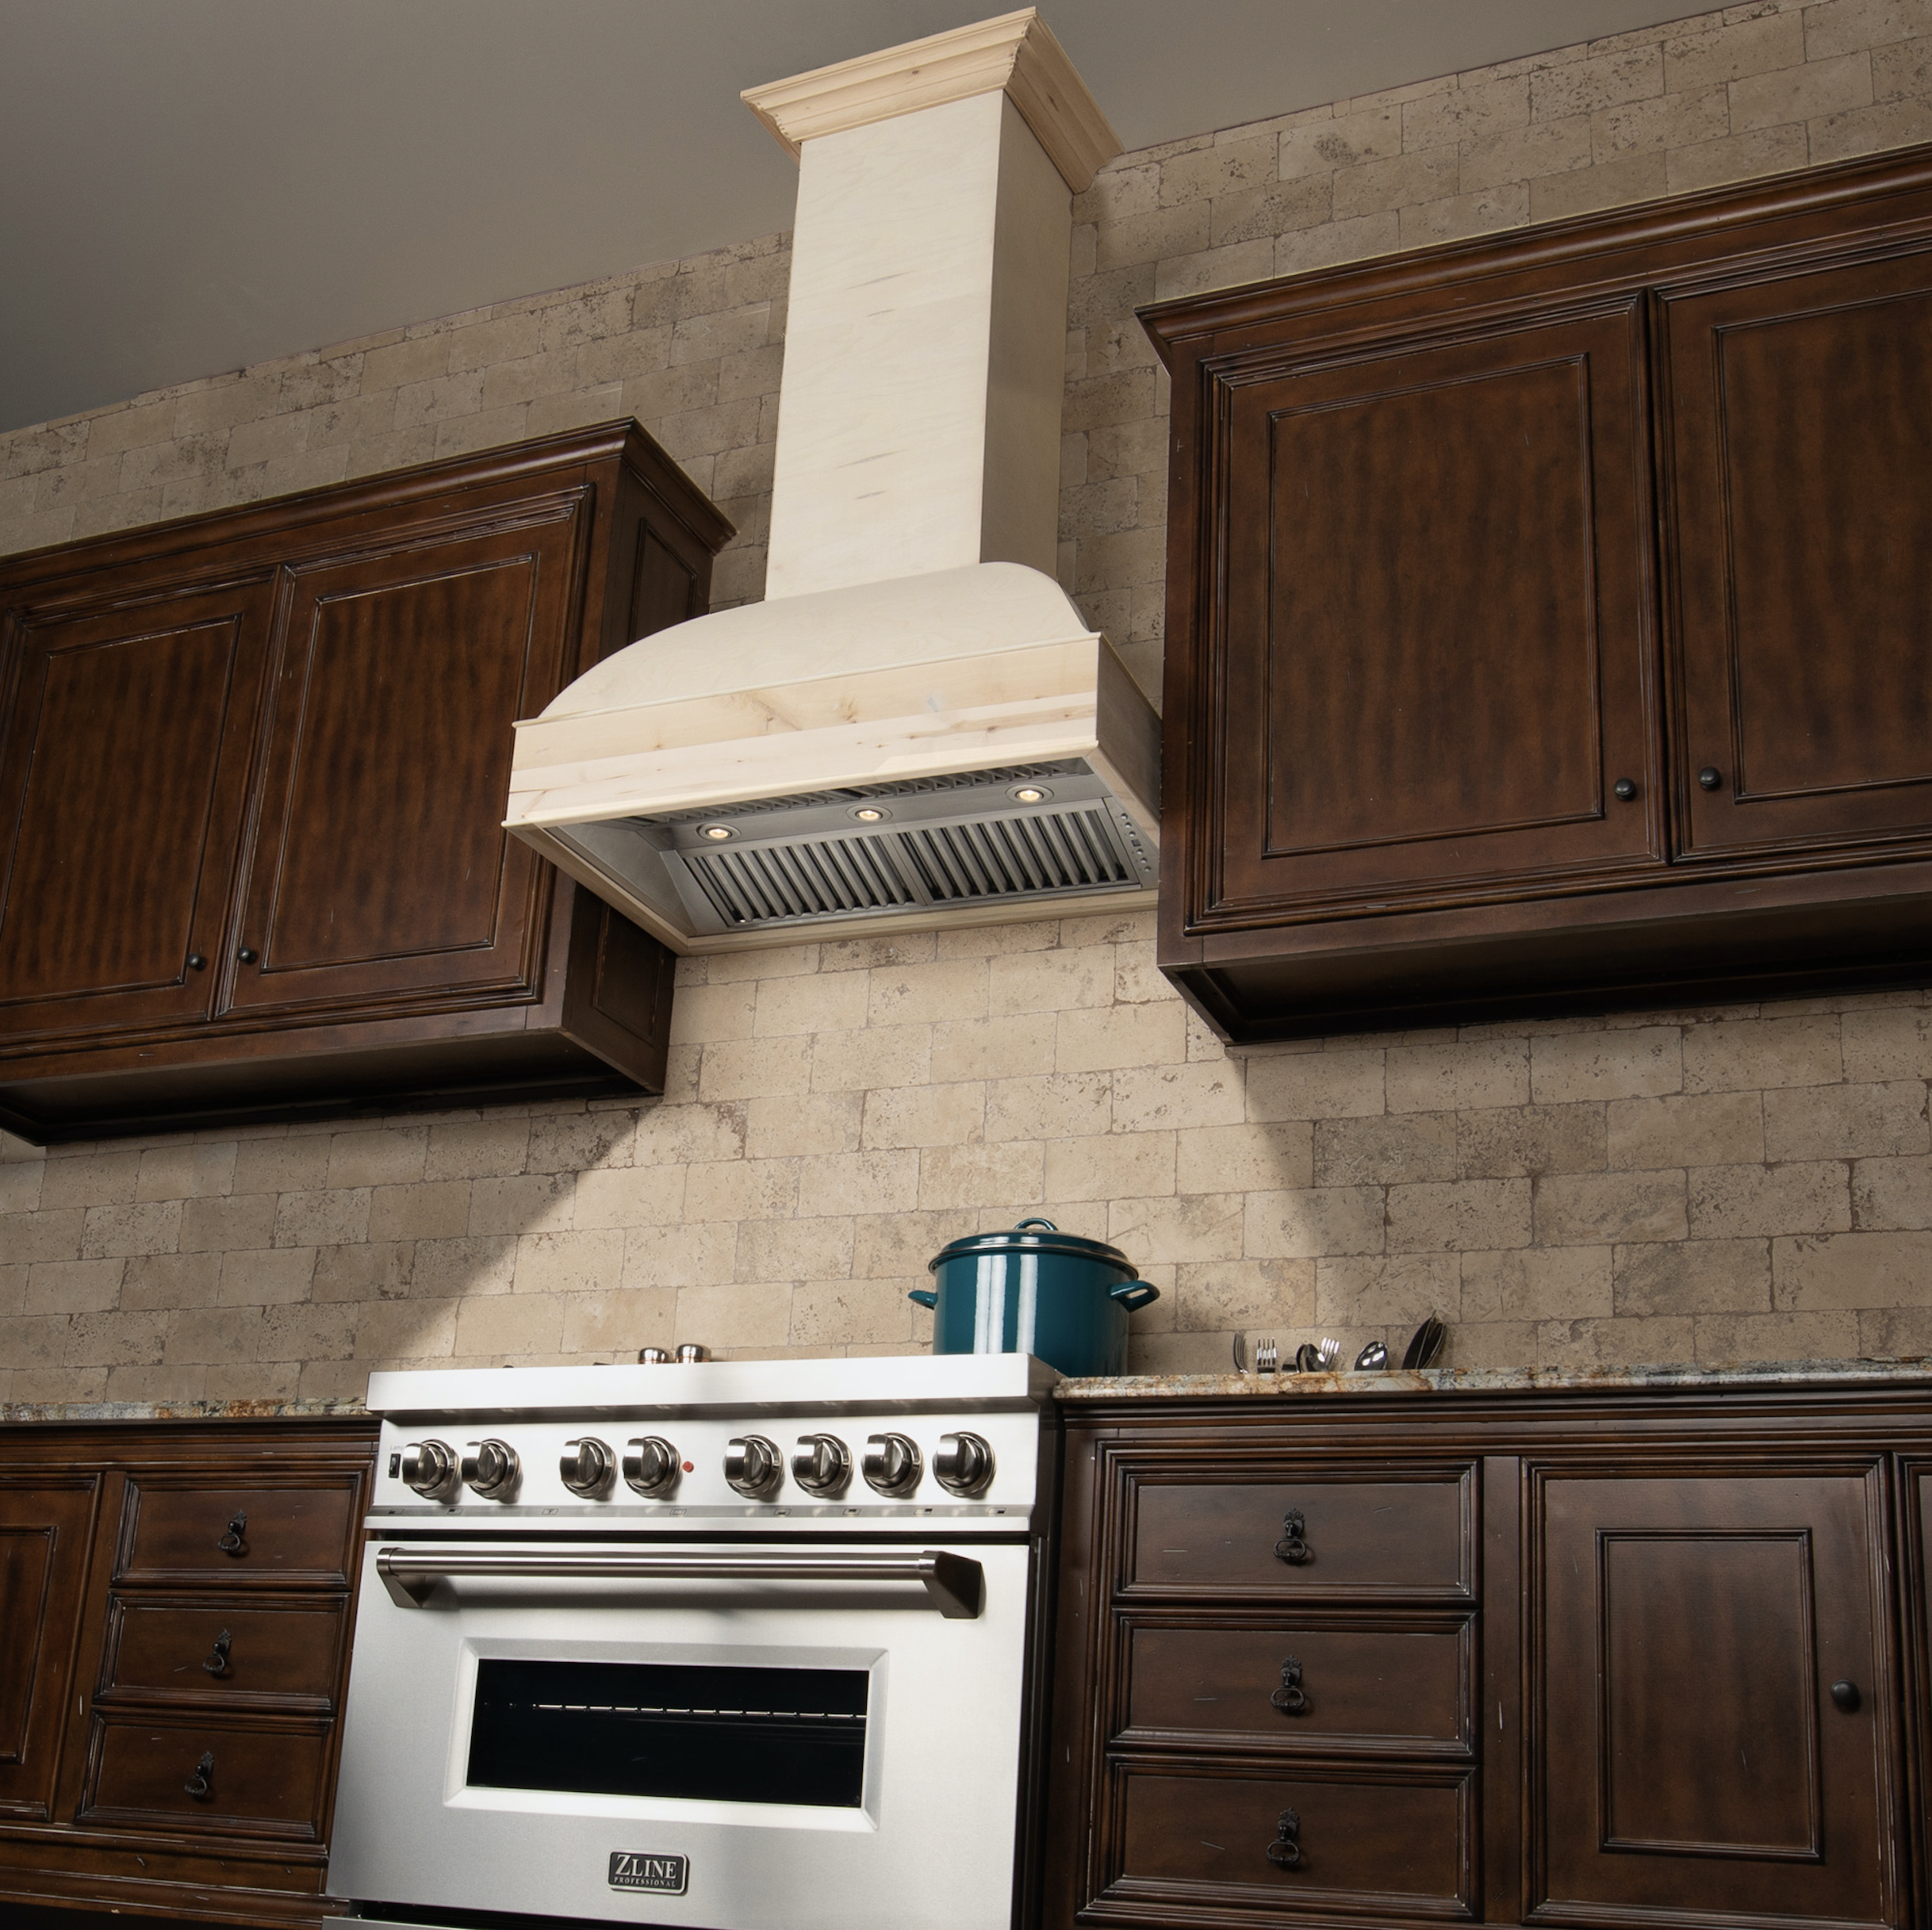 Zline 30 In Unfinished Wooden Wall Mount Range Hood Includes